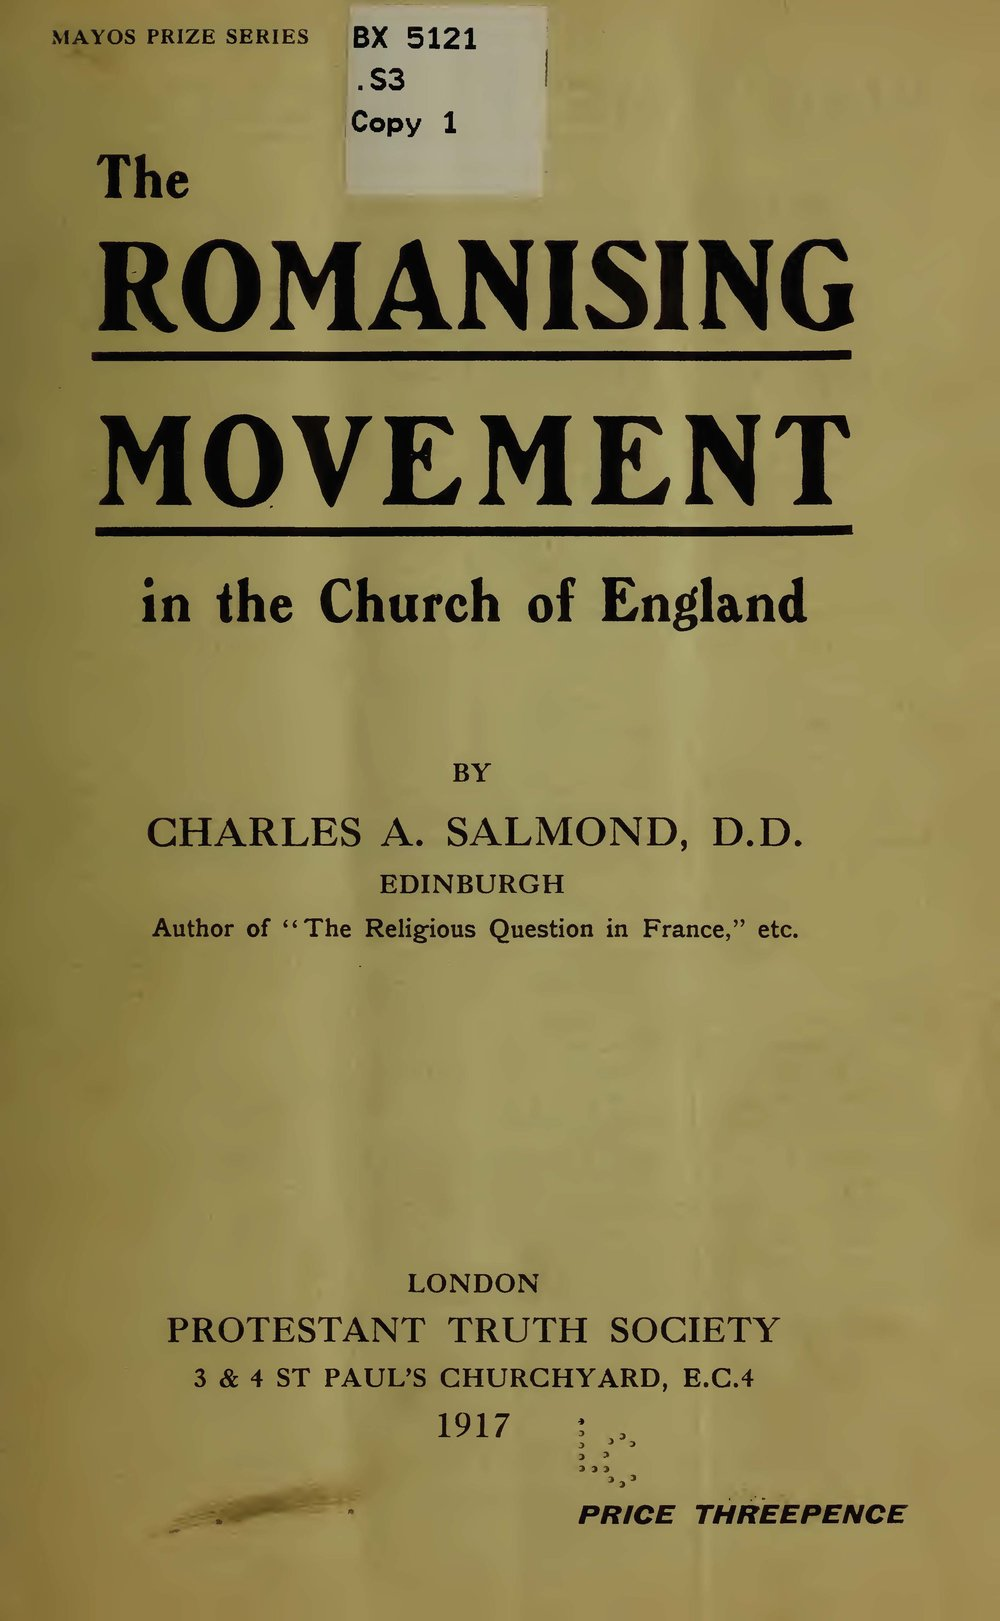 Salmond, Charles Adamson, The Romanising Movement in the Church of England Title Page.jpg